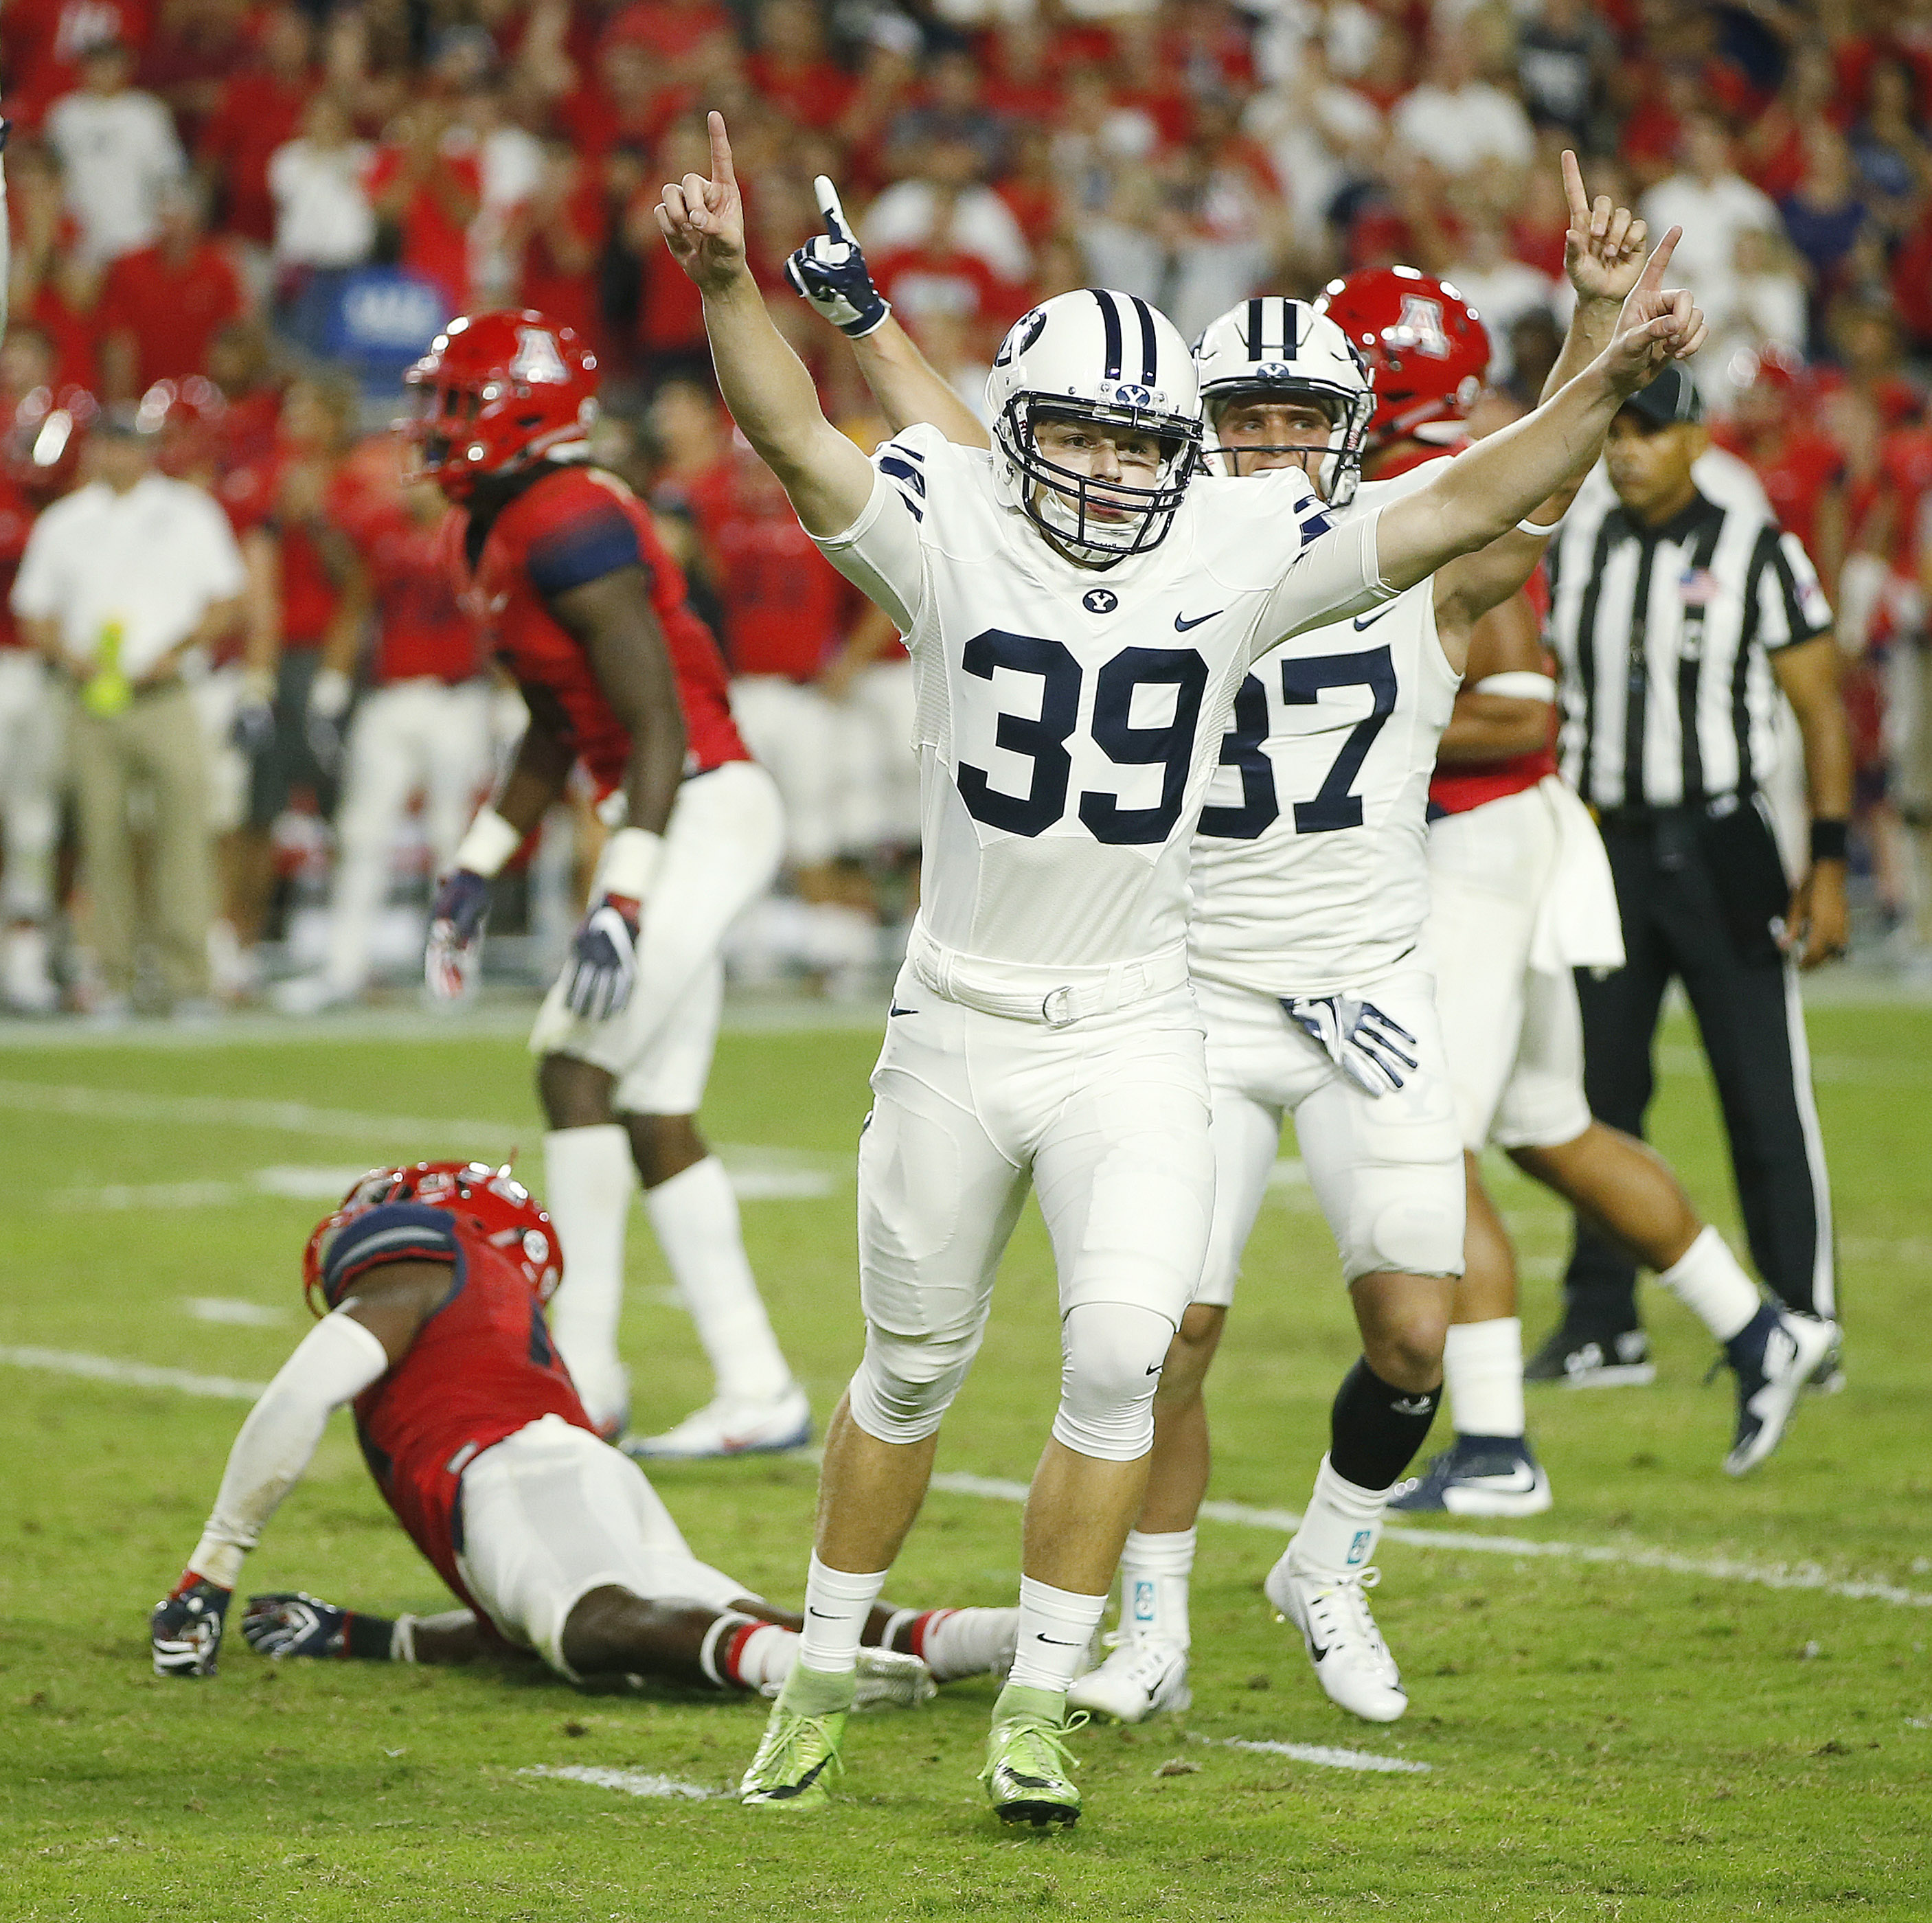 BYU kicker Jake Oldroyd reacts after connecting on the game-winning field goal against Arizona in Phoenix on Saturday, Sept. 3, 2016.